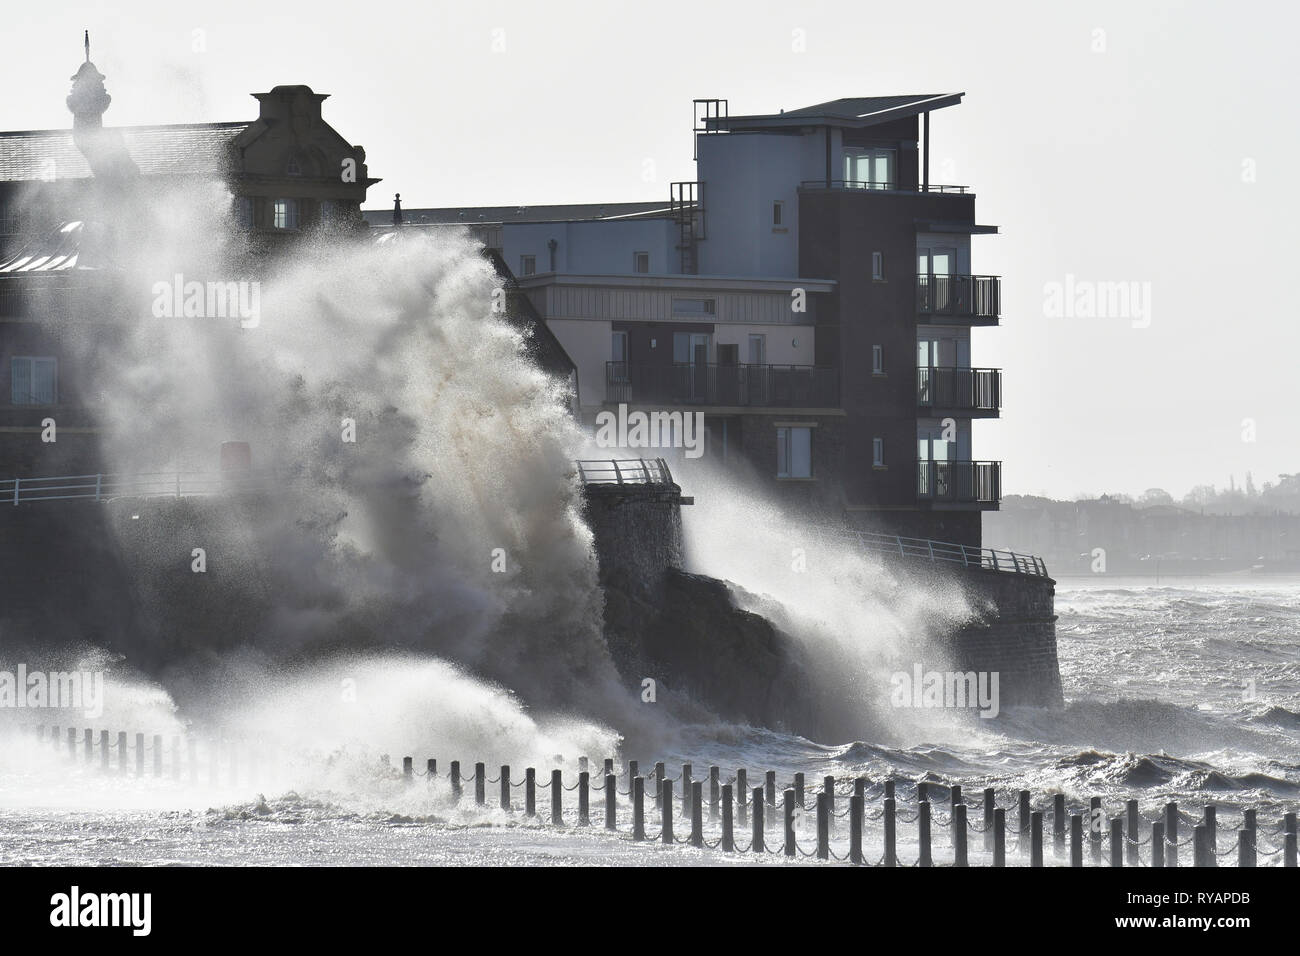 Weston Super Mare, UK. 13th Mar, 2019. UK Weather.Storm Gareth with large waves Batters the Marine Lakes at Weston Super Mare in North Somerset . Credit: Robert Timoney/Alamy Live News - Stock Image